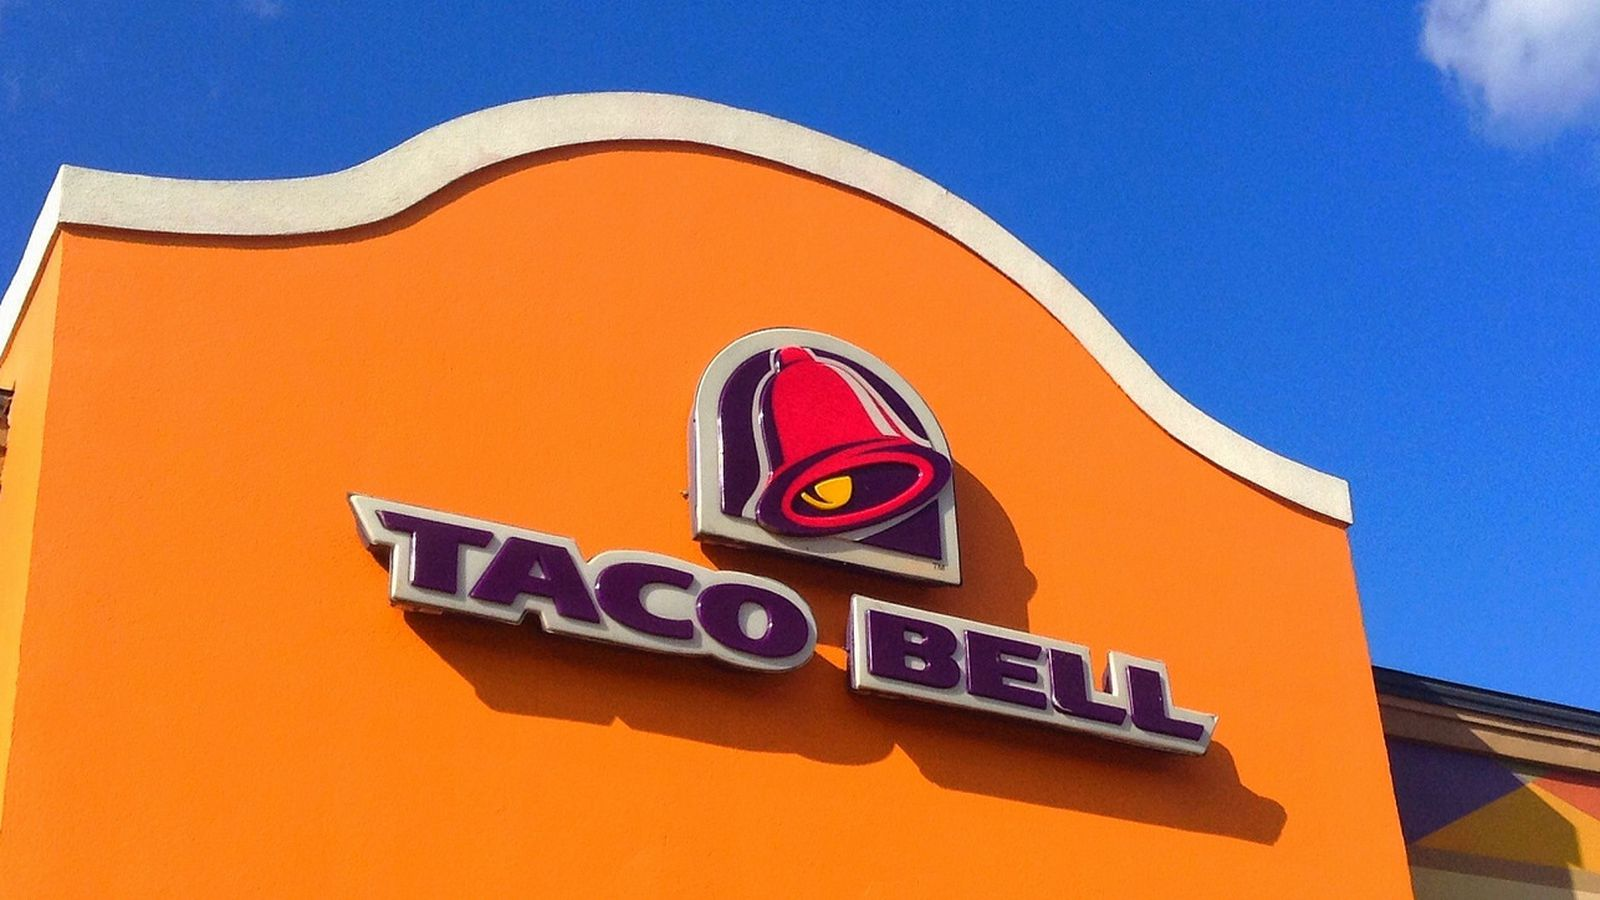 Taco Bell Launches Test Kitchen Tasting Menu Dinners in ...